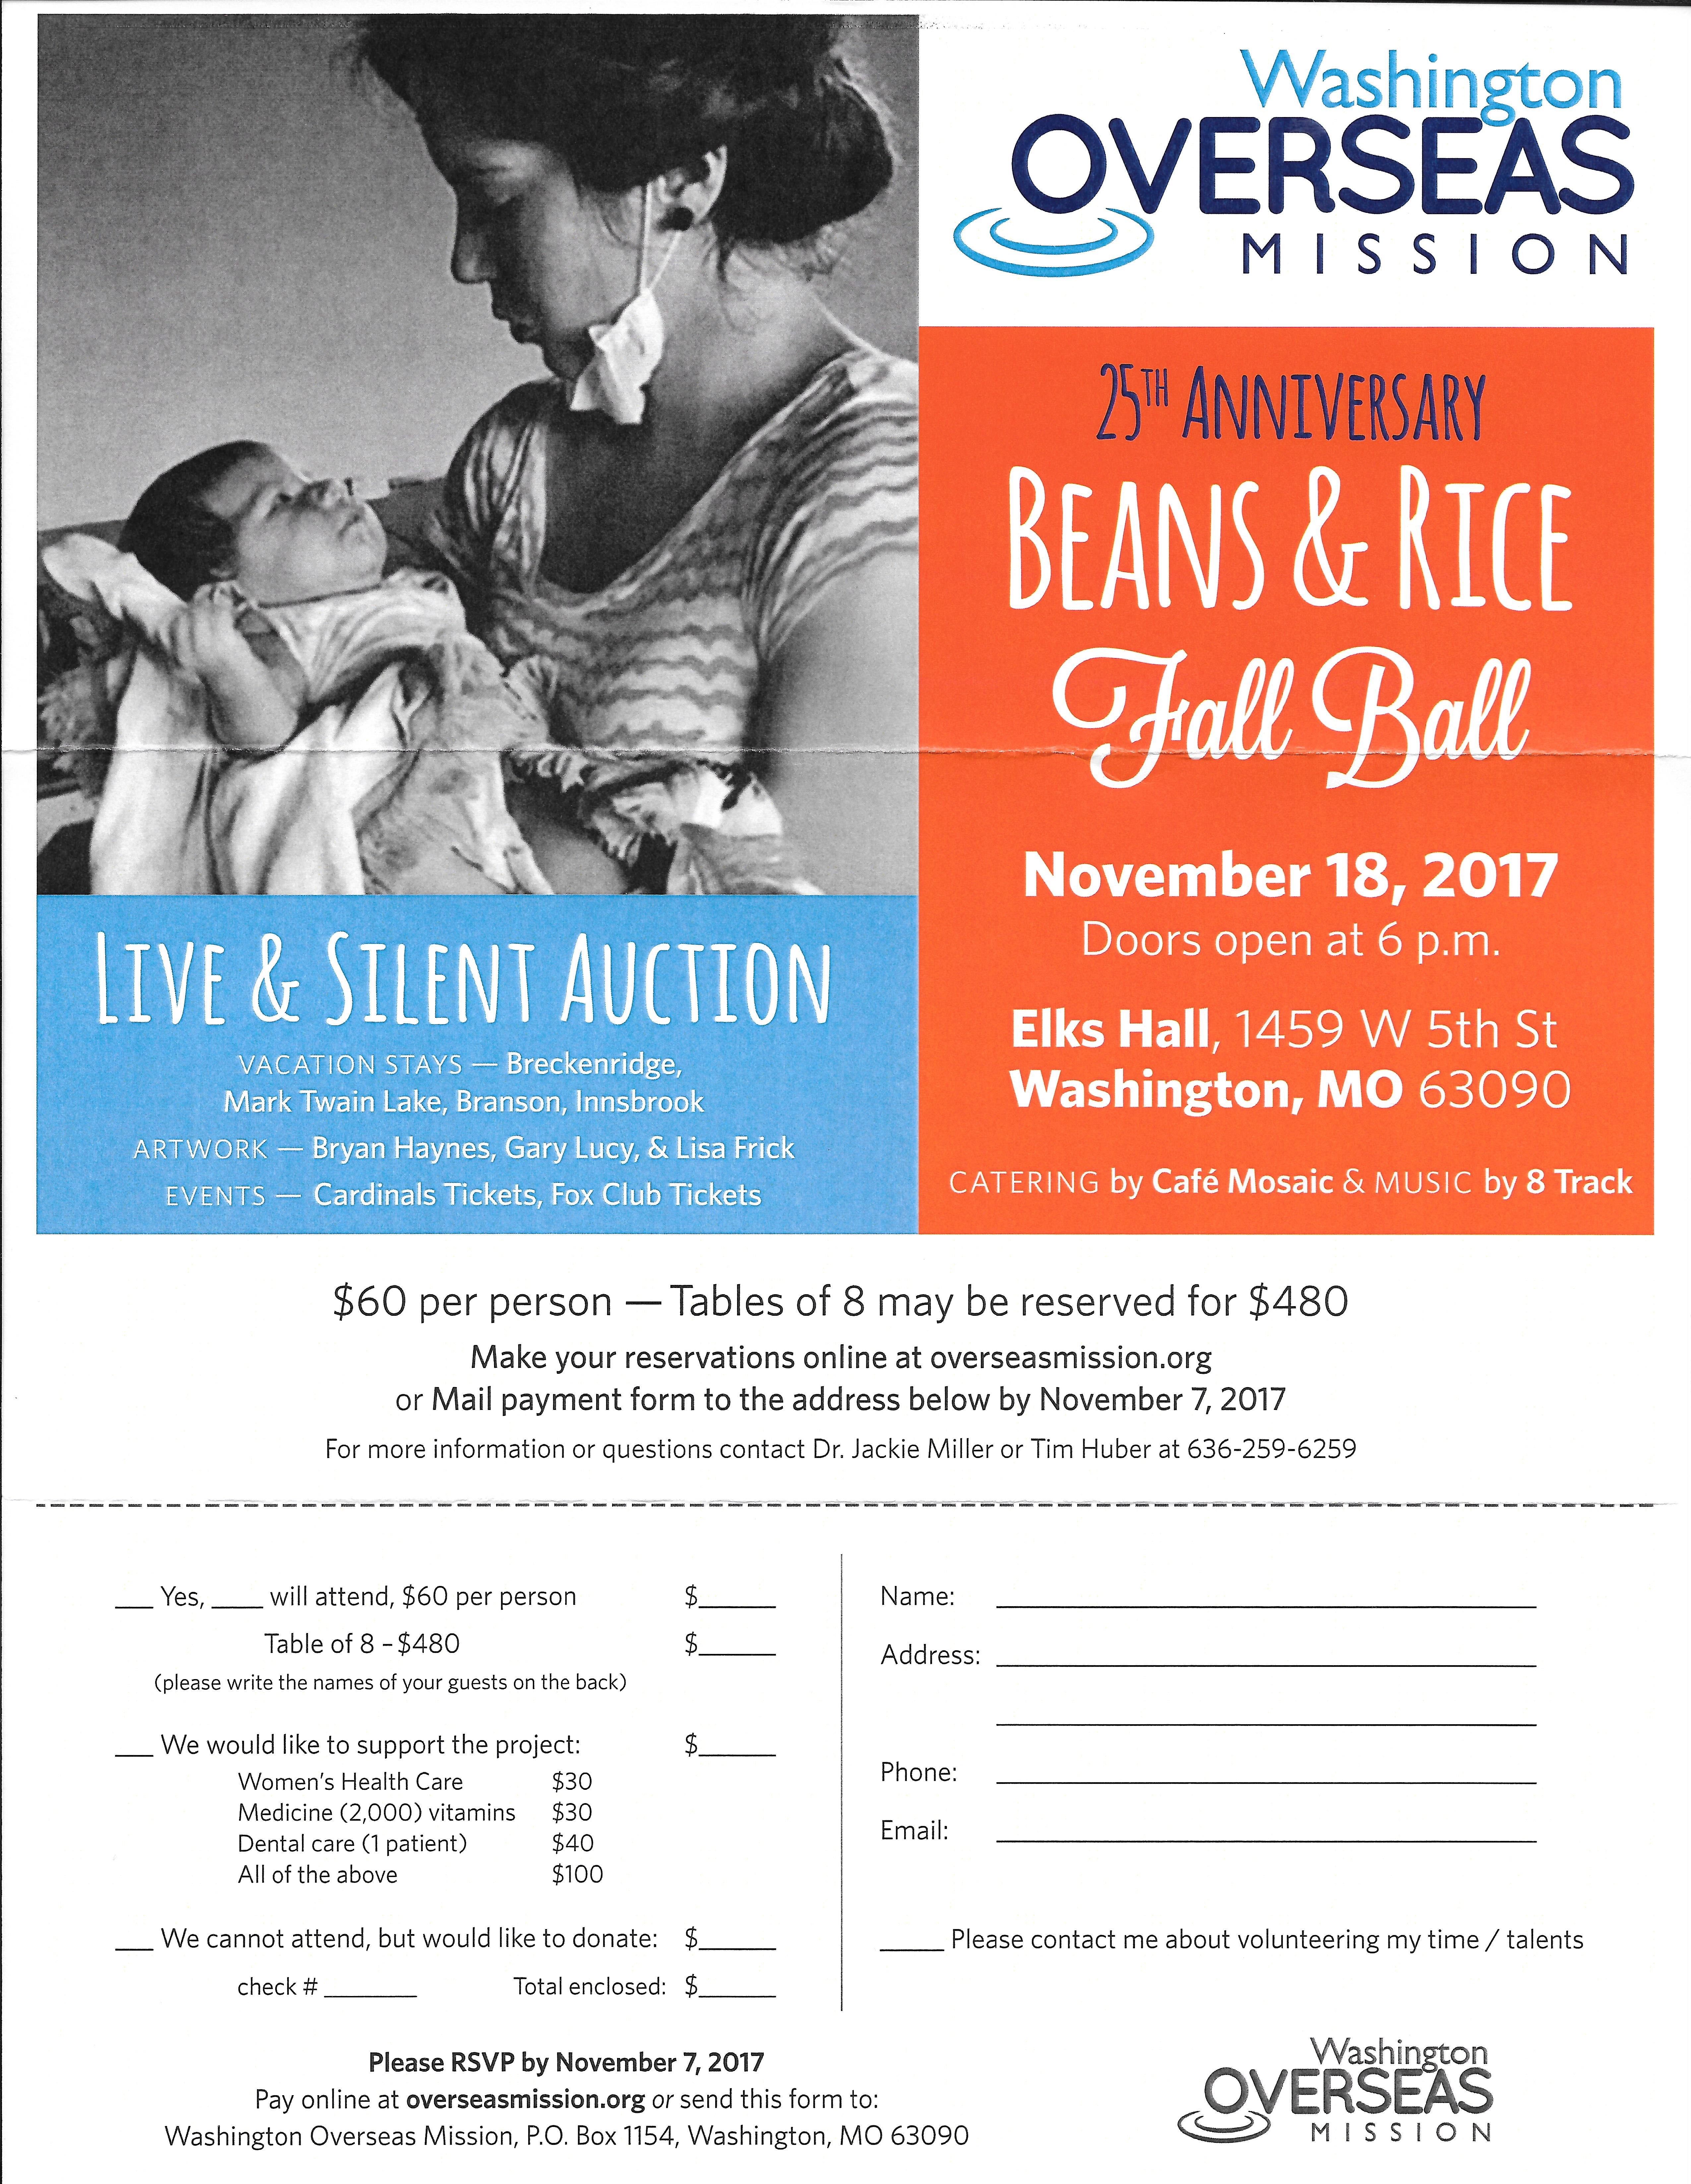 Washington Overseas Mission – 2017 Beans and Rice Ball